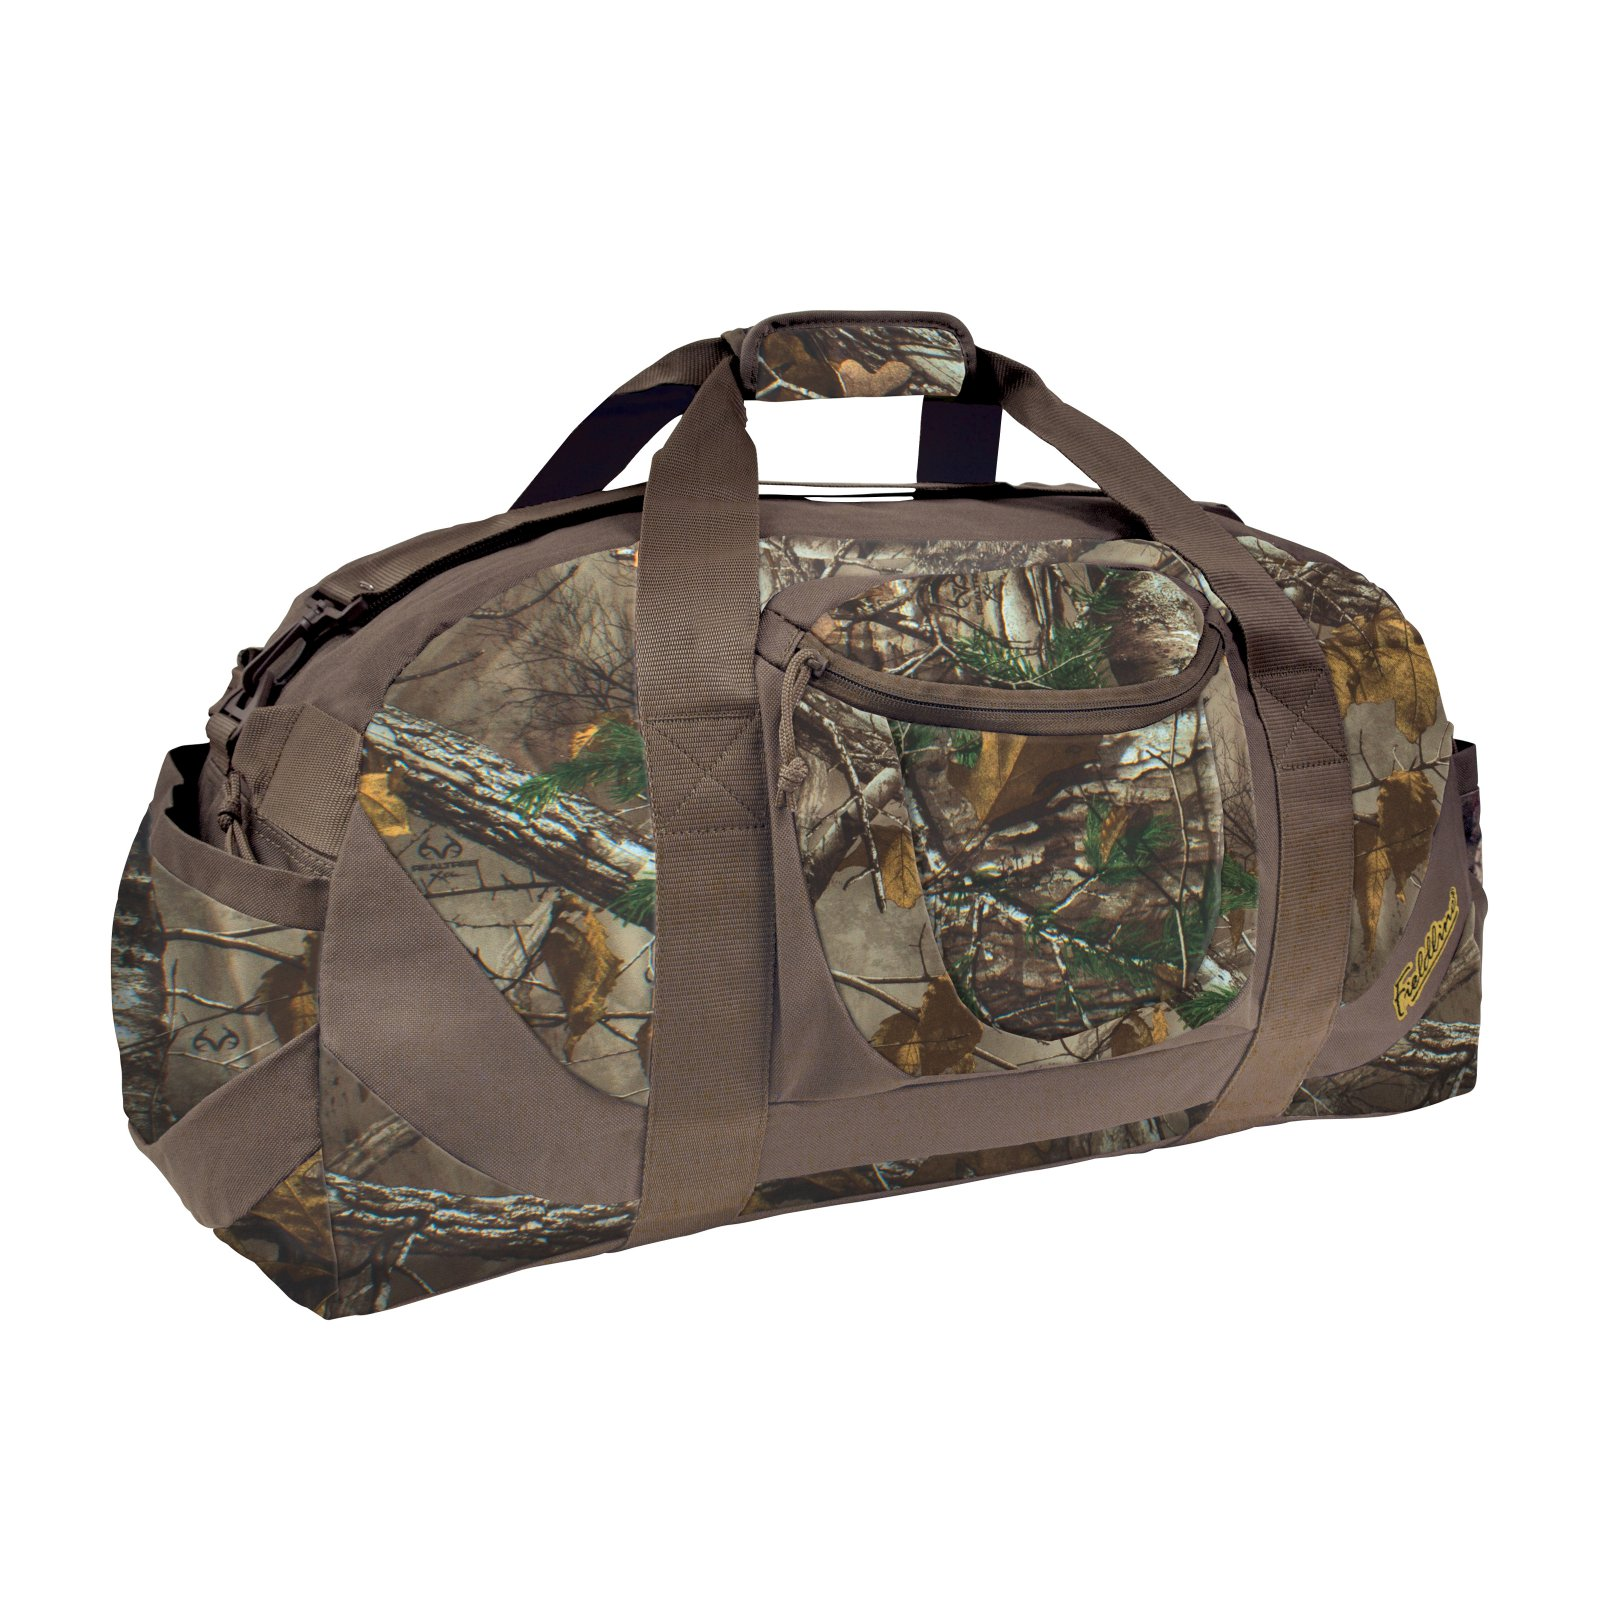 Fieldline Ultimate Field Haul Duffle Bag in Realtree APX by The Outdoor Recreation Group